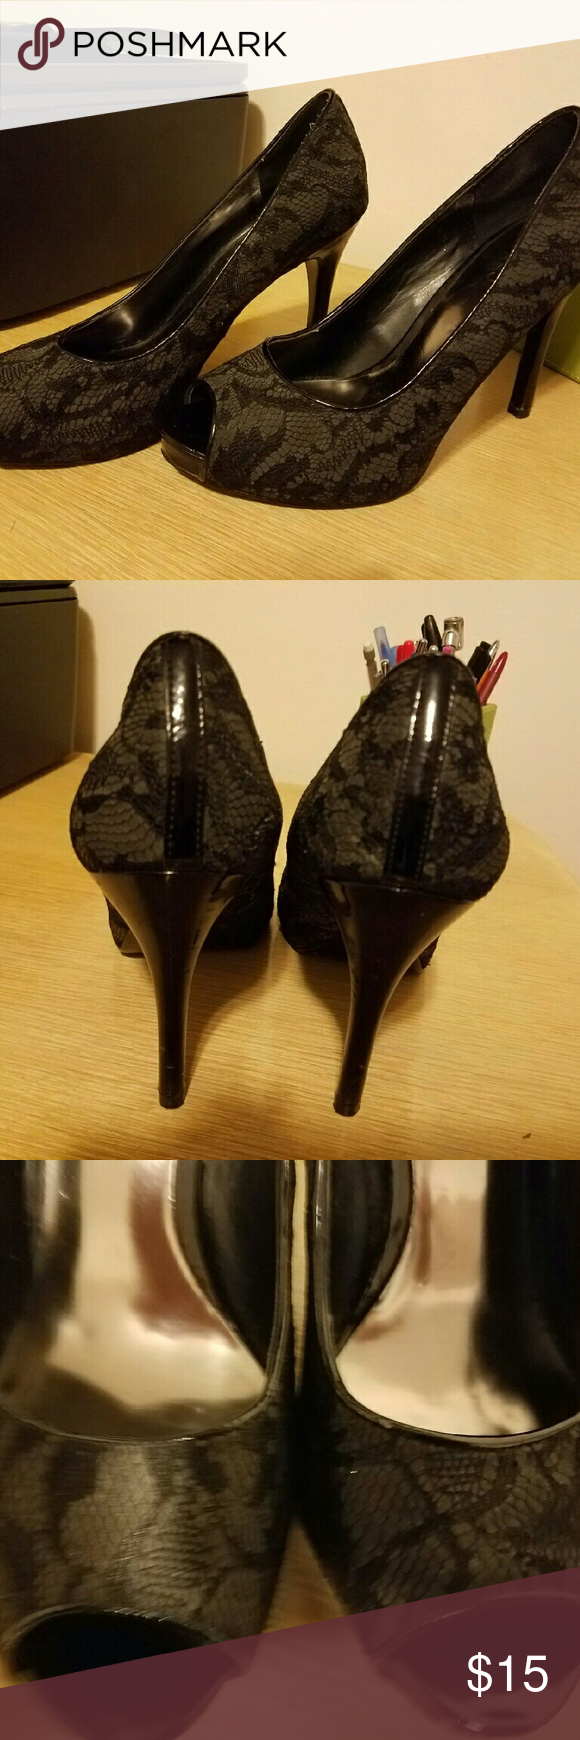 Black Lacey Pumps Peep Toe These are in good used condition. A couple of small blemishes and soles are used looking. Barely noticeable blemishes.  Carlos santana brand. Peep toe. Carlos Santana Shoes Heels